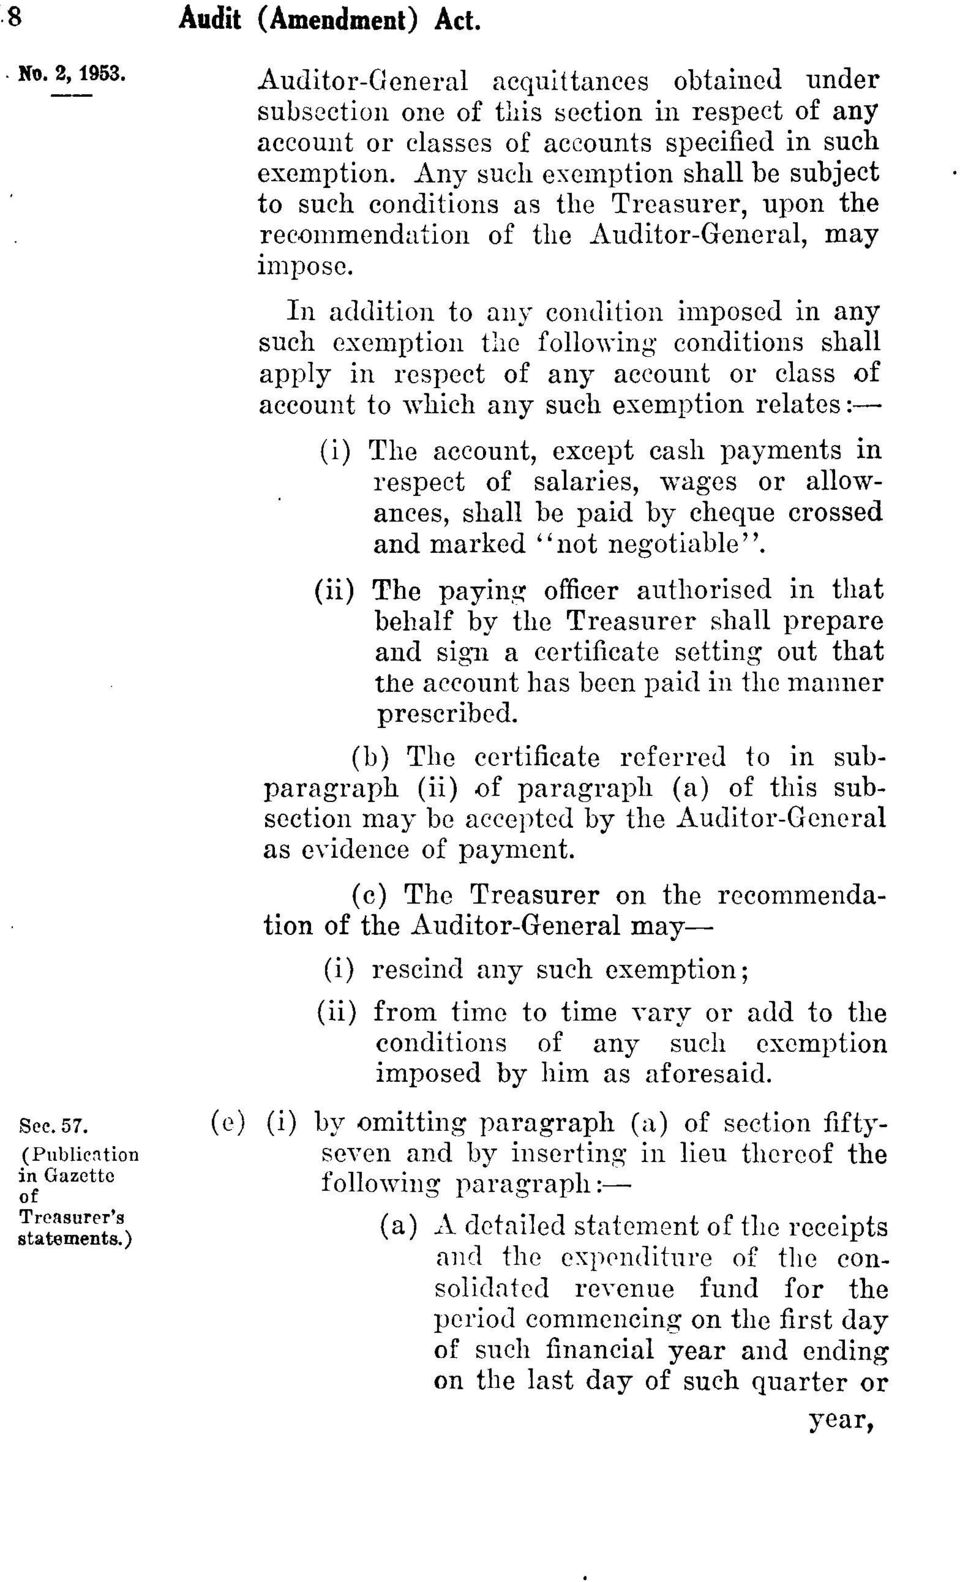 In addition to any condition imposed in any such exemption the following conditions shall apply in respect of any account or class of account to which any such exemption relates: (i) The account,